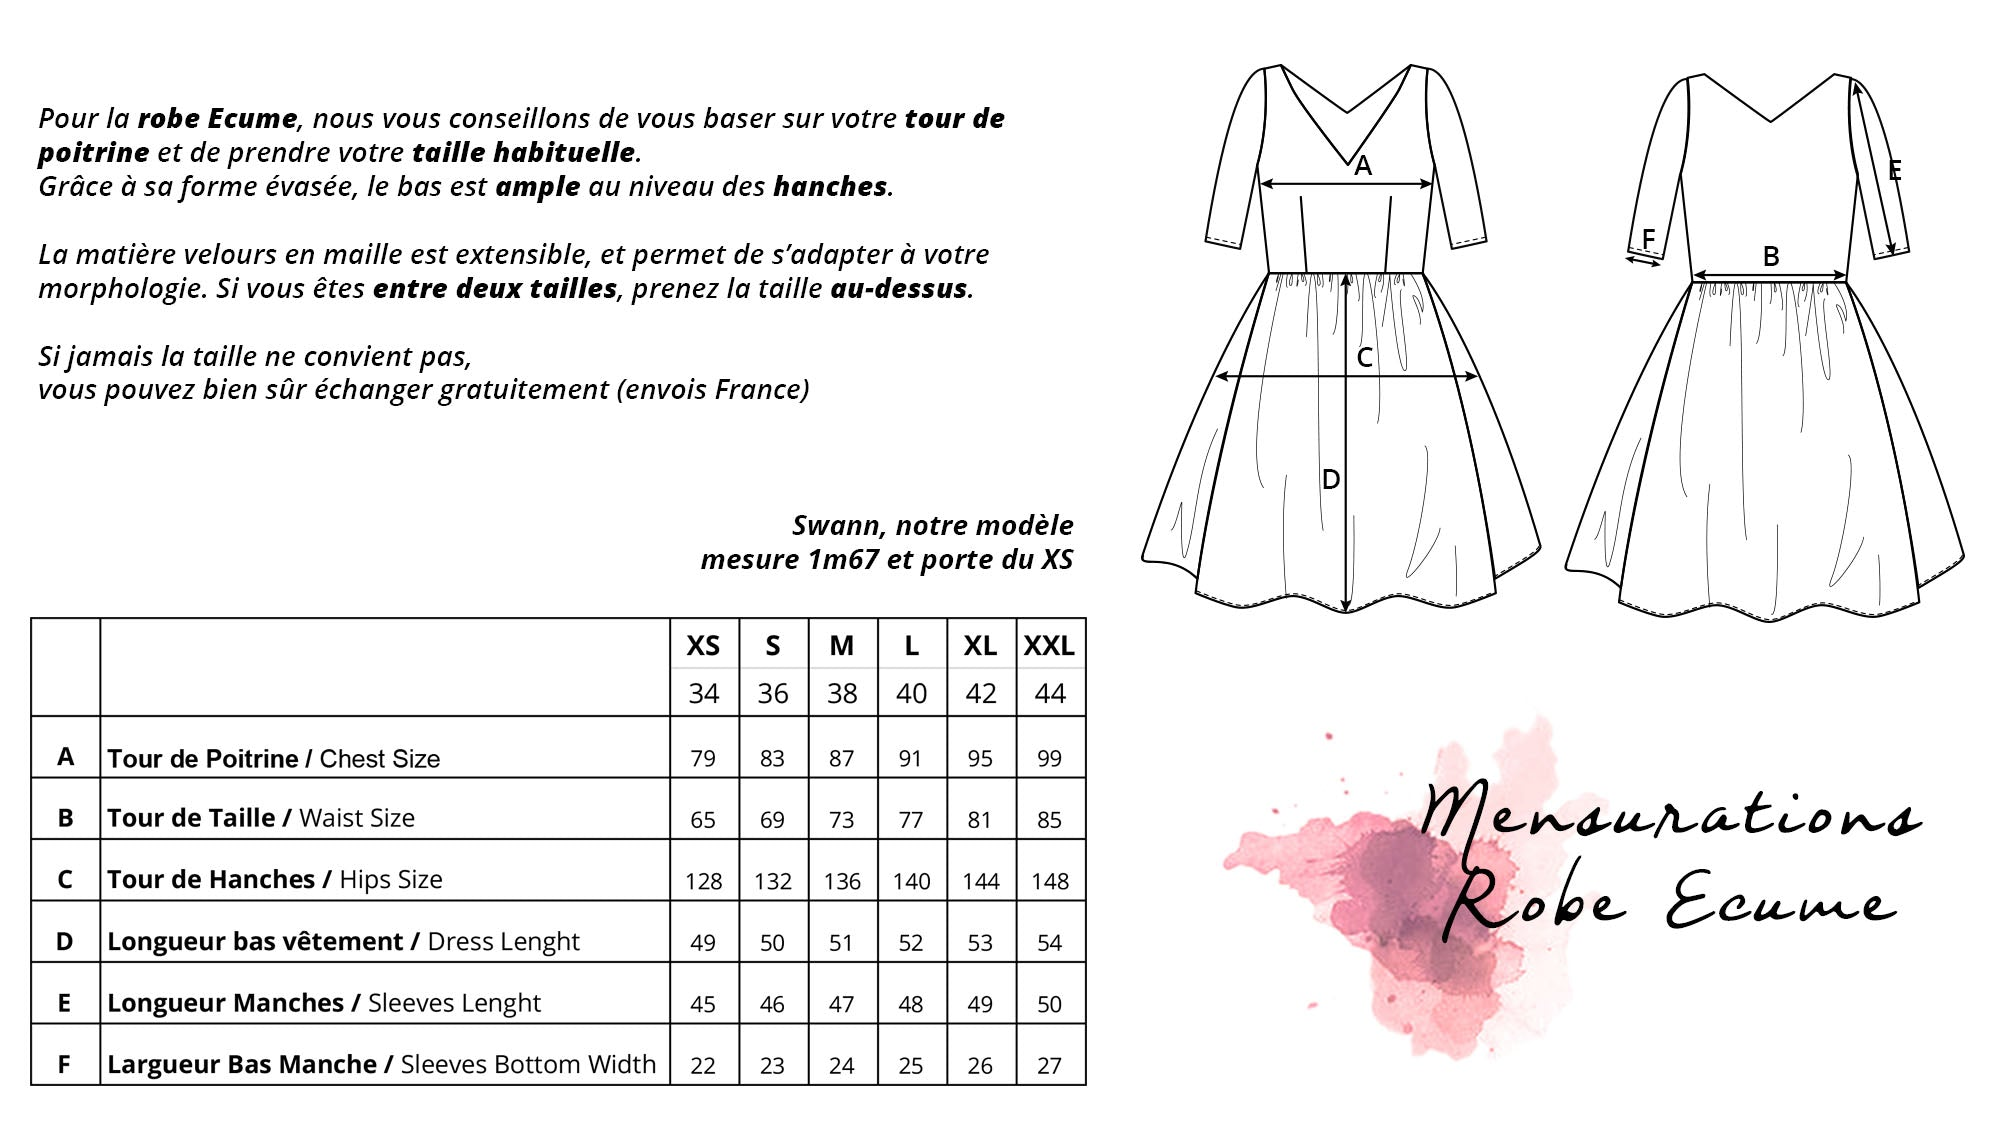 guide des tailles robe ecume